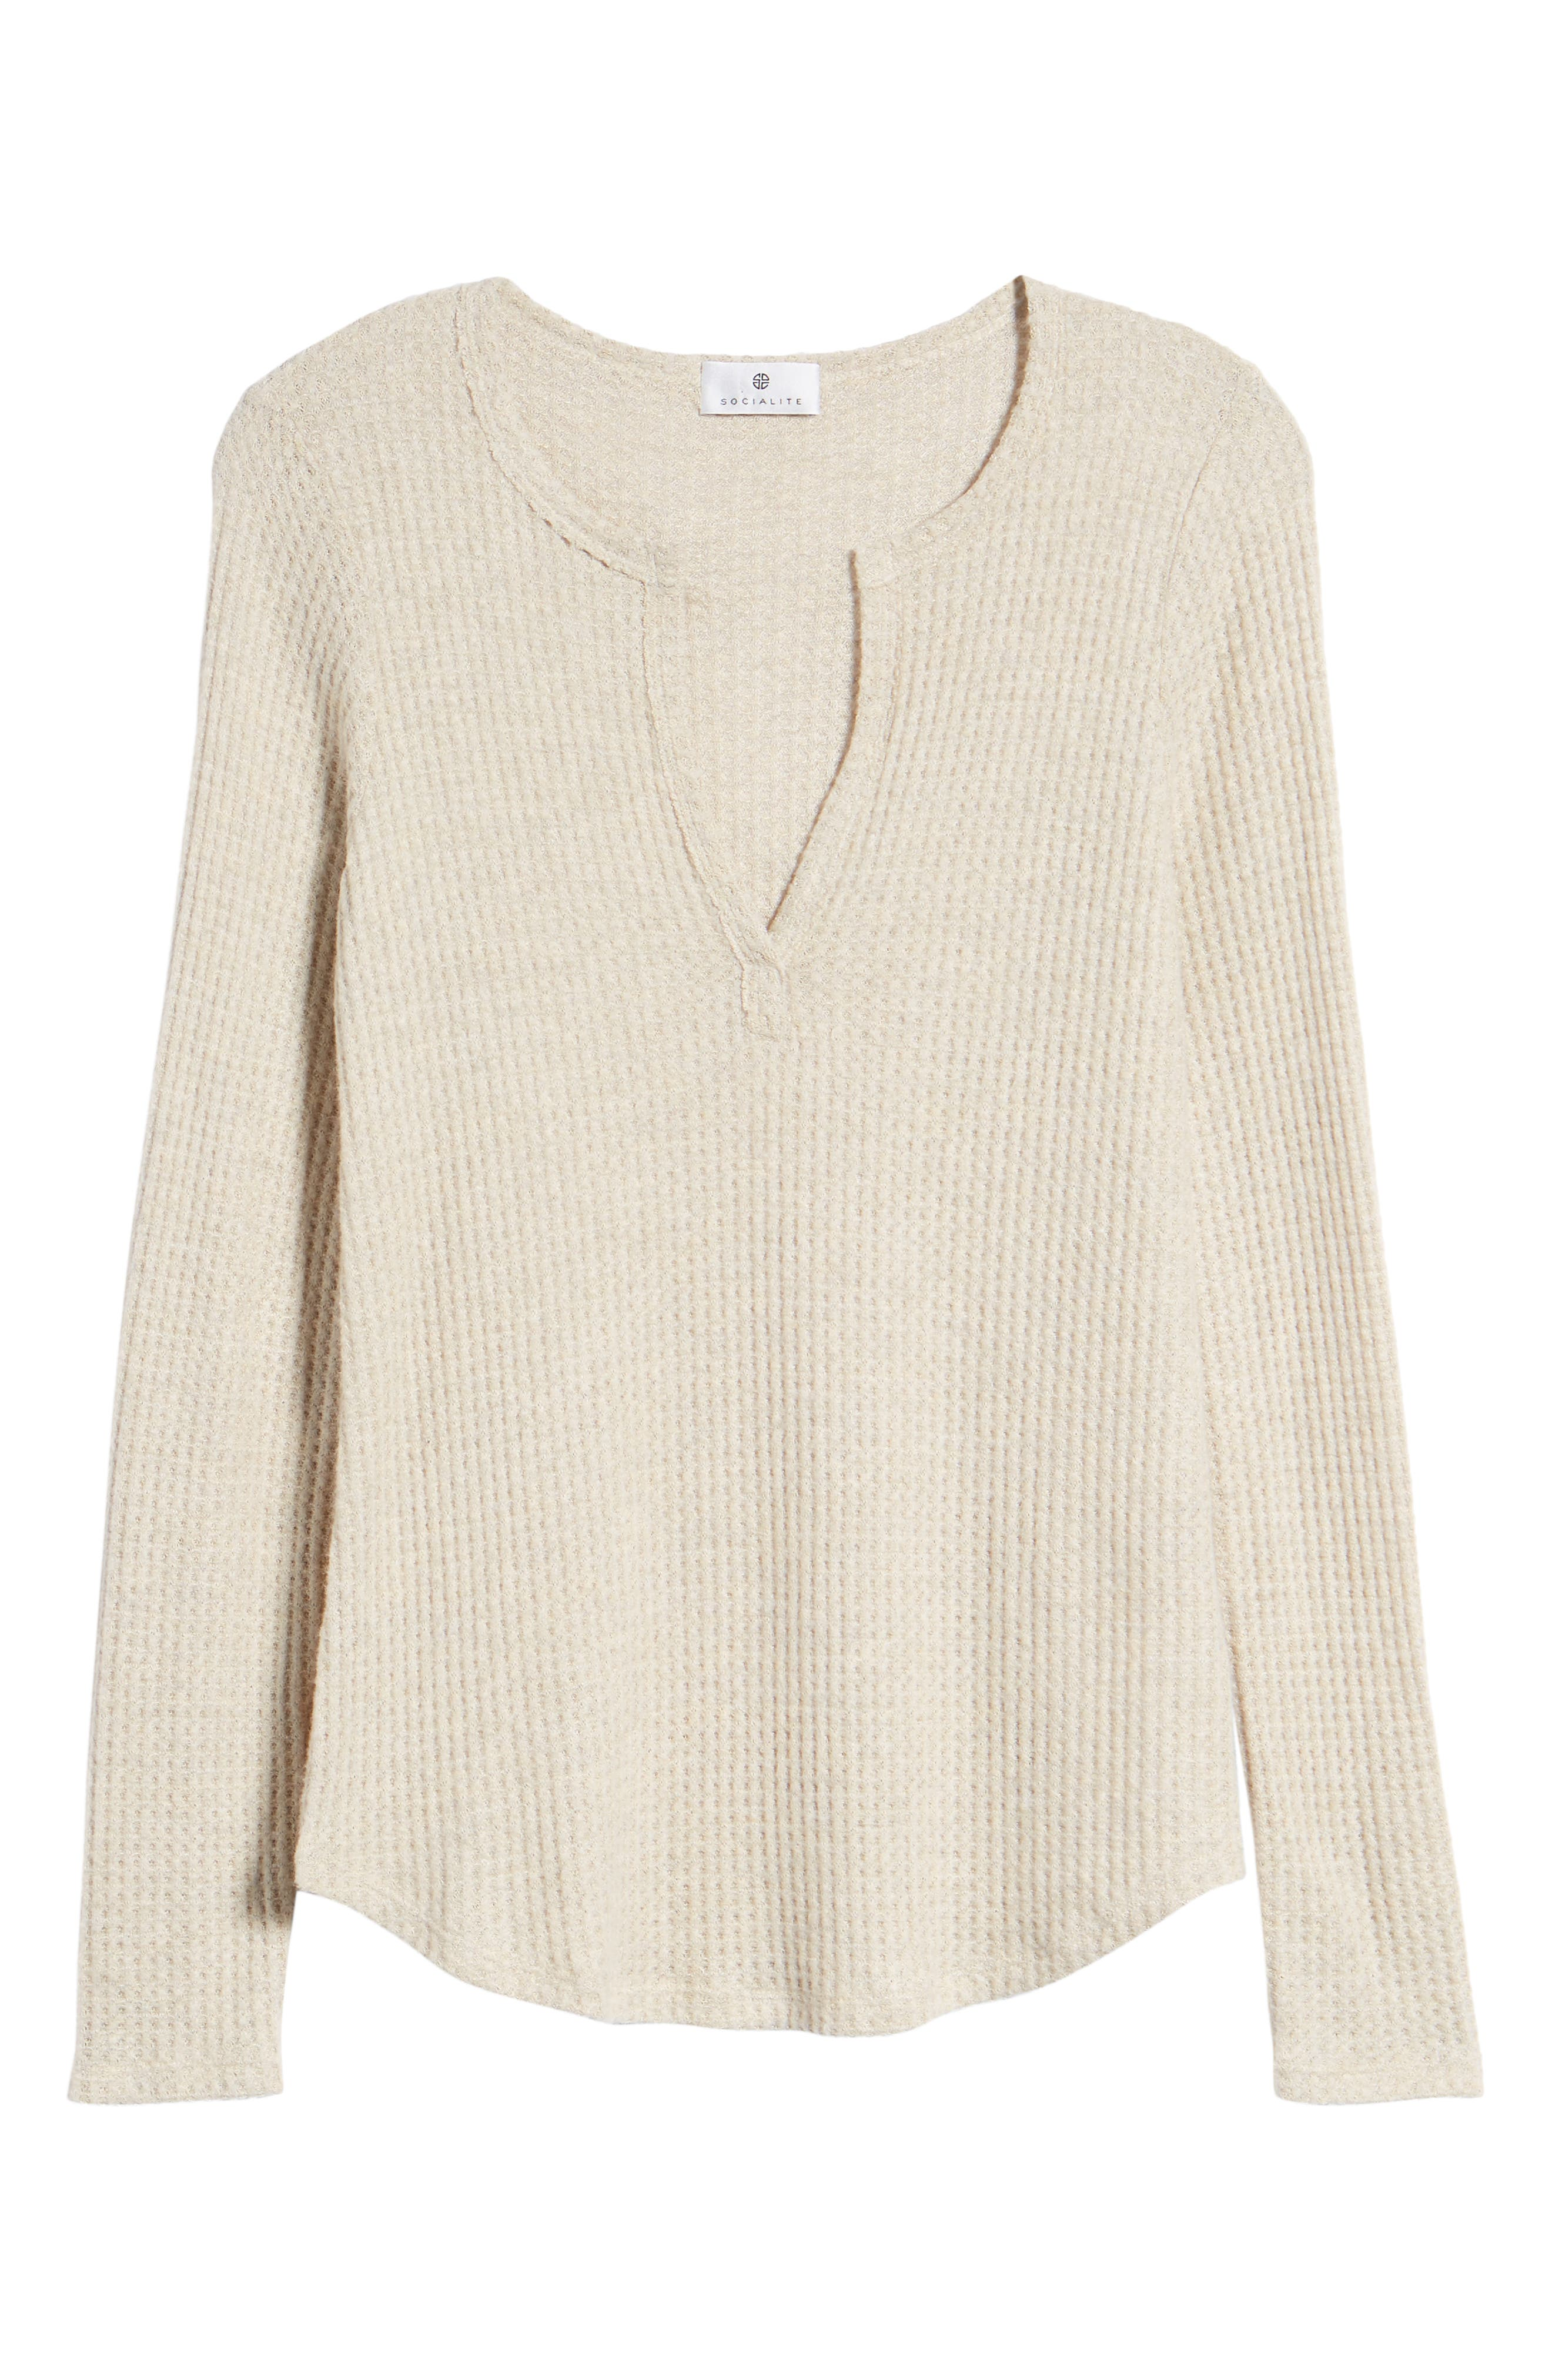 Thermal Henley Top,                             Alternate thumbnail 7, color,                             OATMEAL